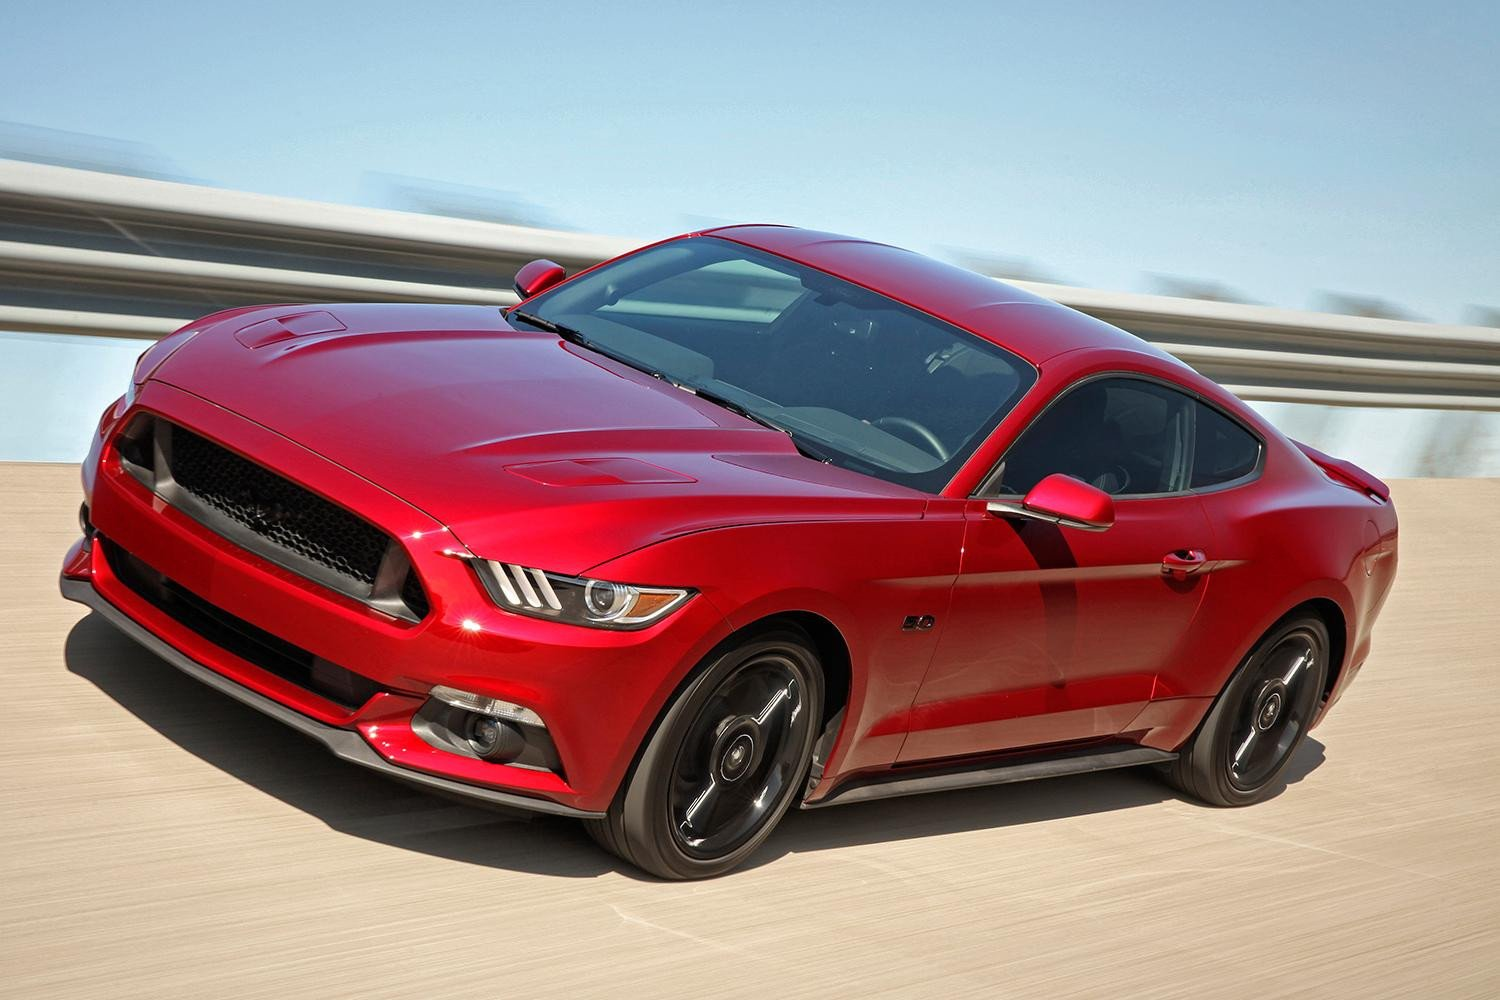 Ford Offers Apple CarPlay, Android Auto Update to 2016 Mustang Owners